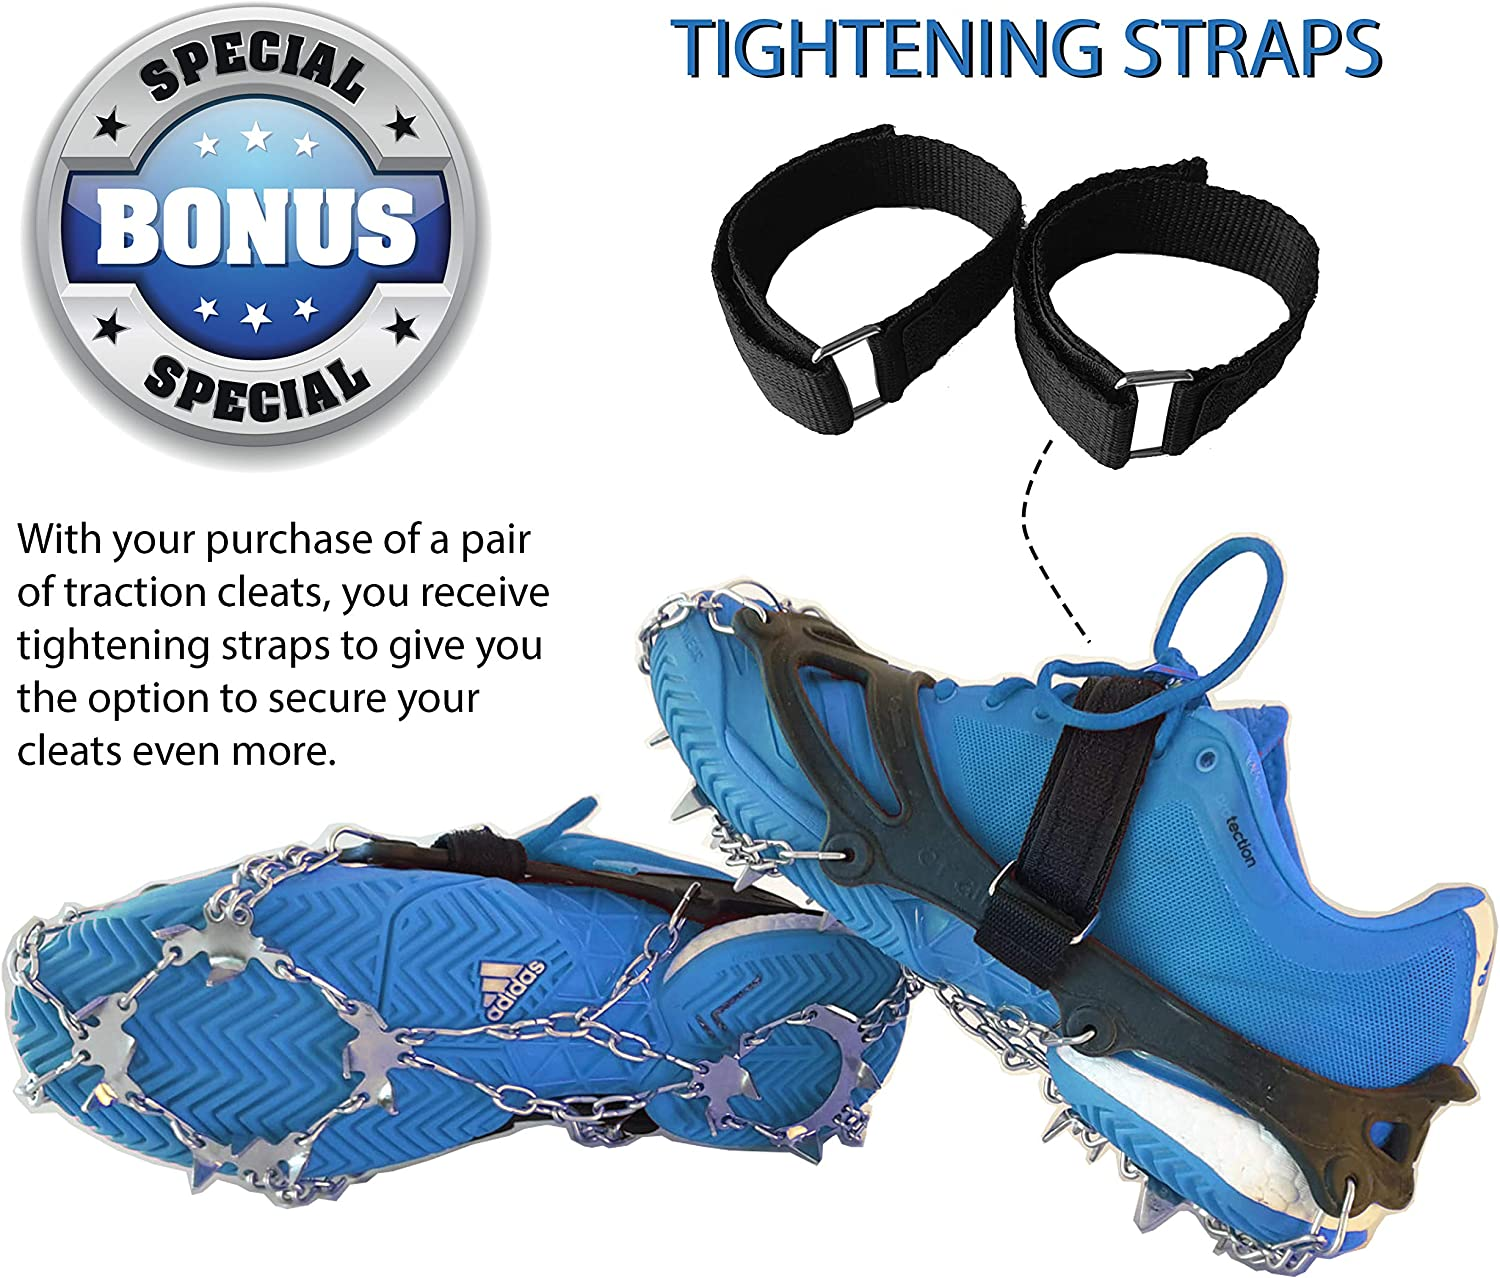 Limm Crampons Ice Traction Cleats Portable Microspikes and Ice Cleats for Shoes and Boots Shoe Grips on Bottom of Shoes Quickly /& Easily Over Footwear for Snow and Ice